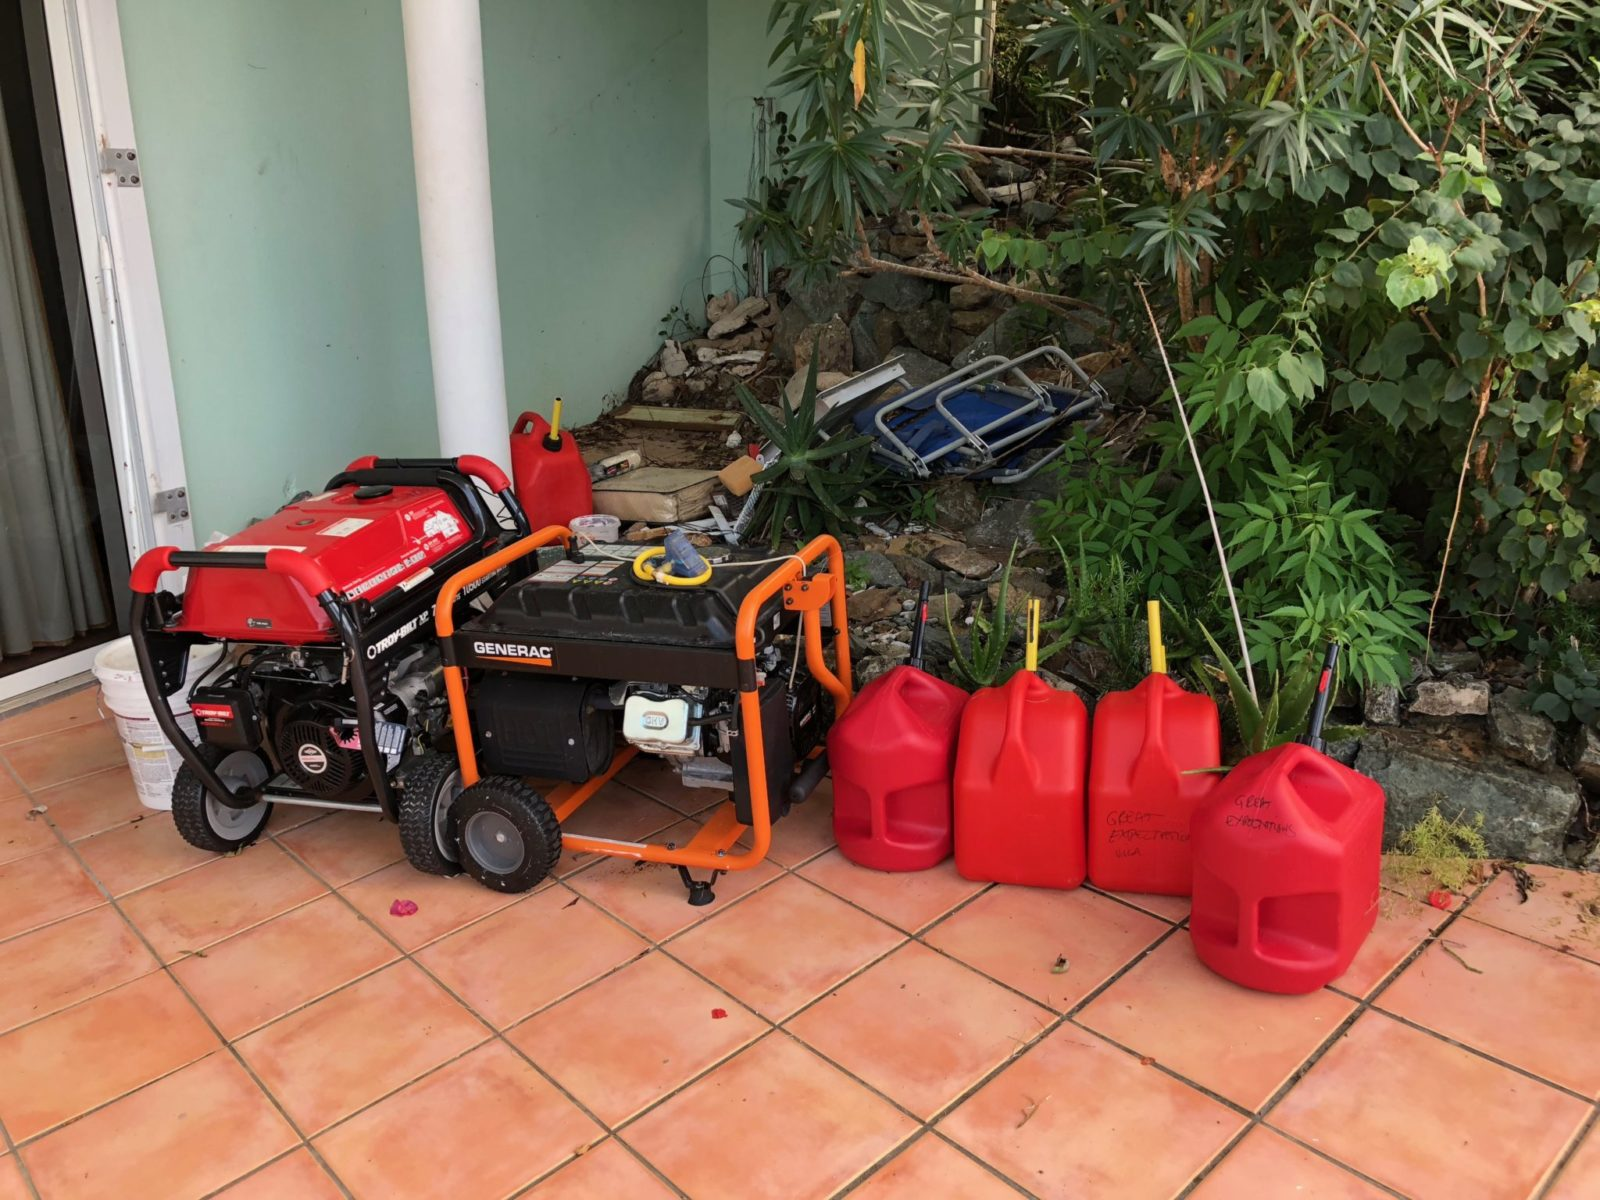 our st John villa portable generator after irma